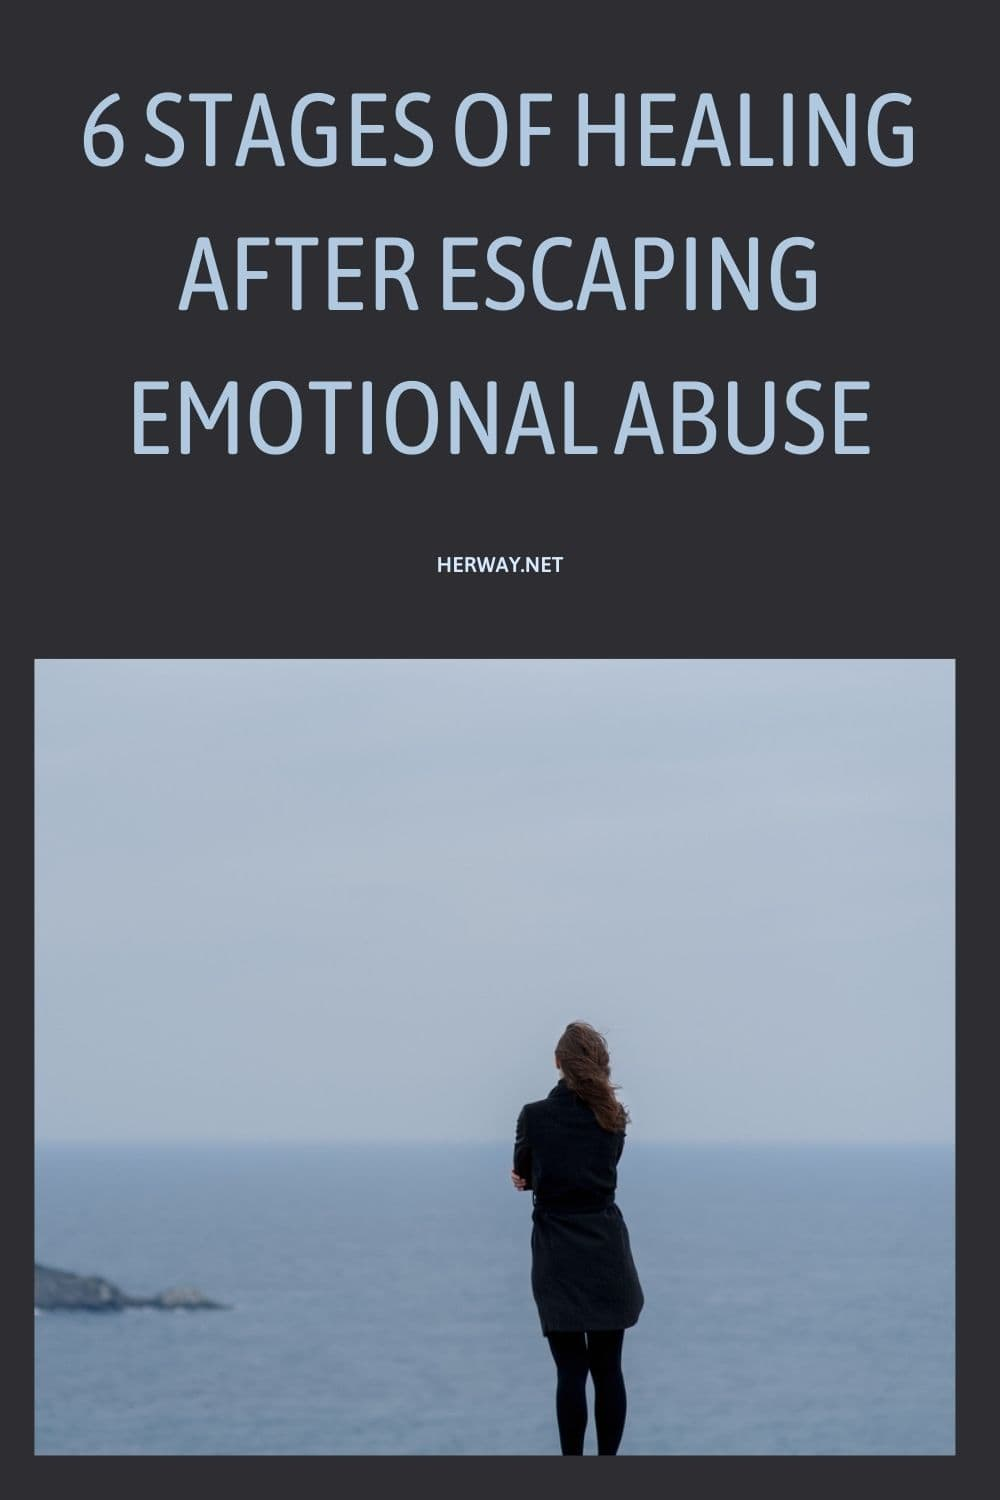 6 Stages Of Healing After Escaping Emotional Abuse